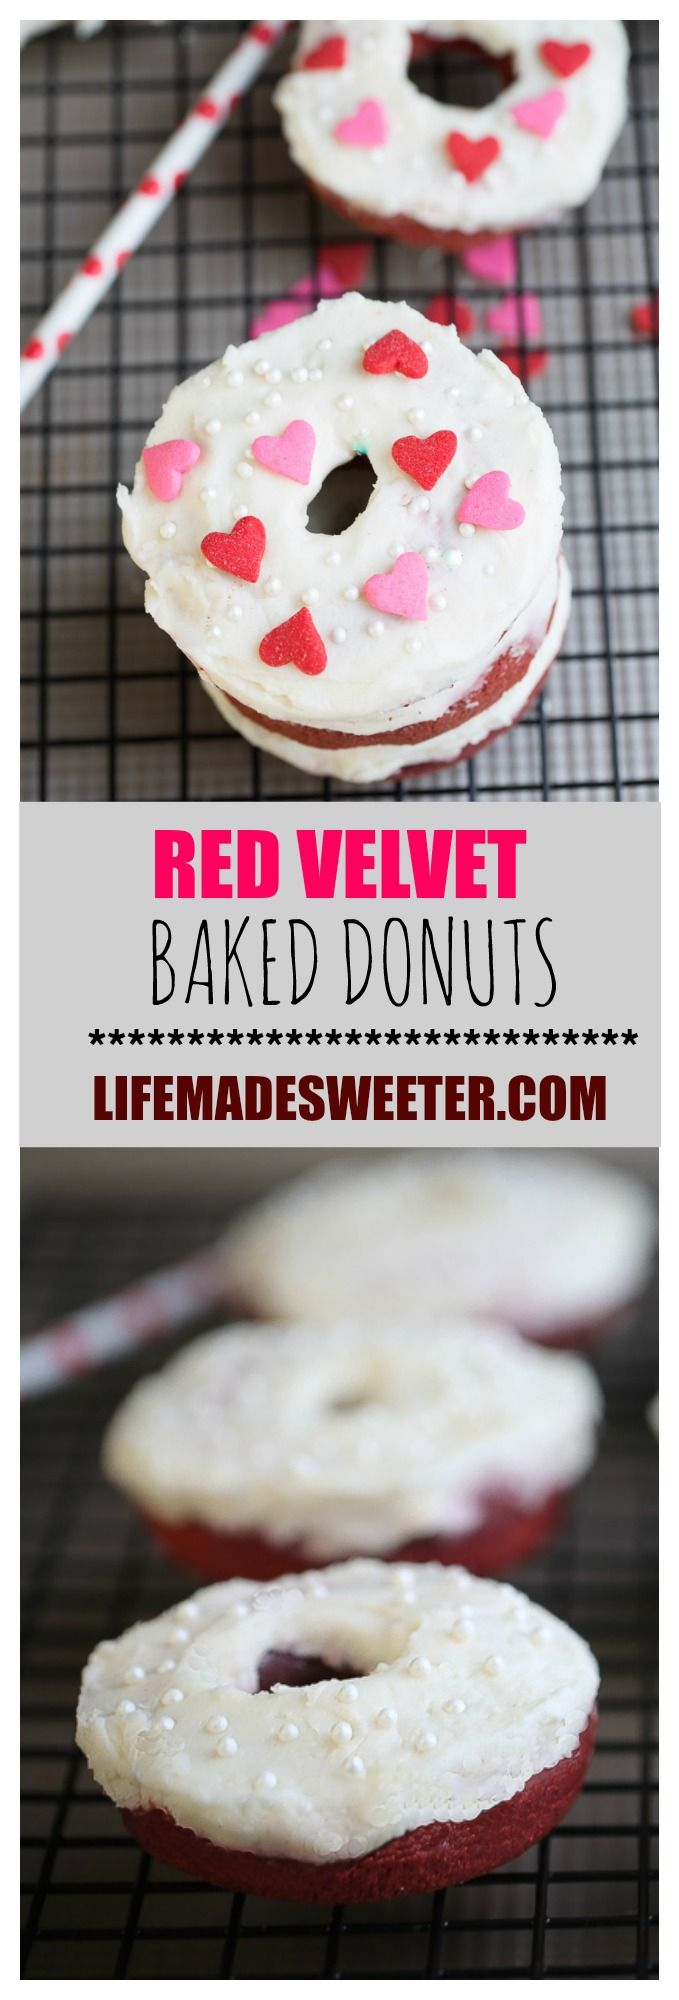 Baked Red Velvet Cake Donuts / doughnuts with a sweet and slightly tangy cream cheese frosting. So easy to make and perfect for Valentine's Day!